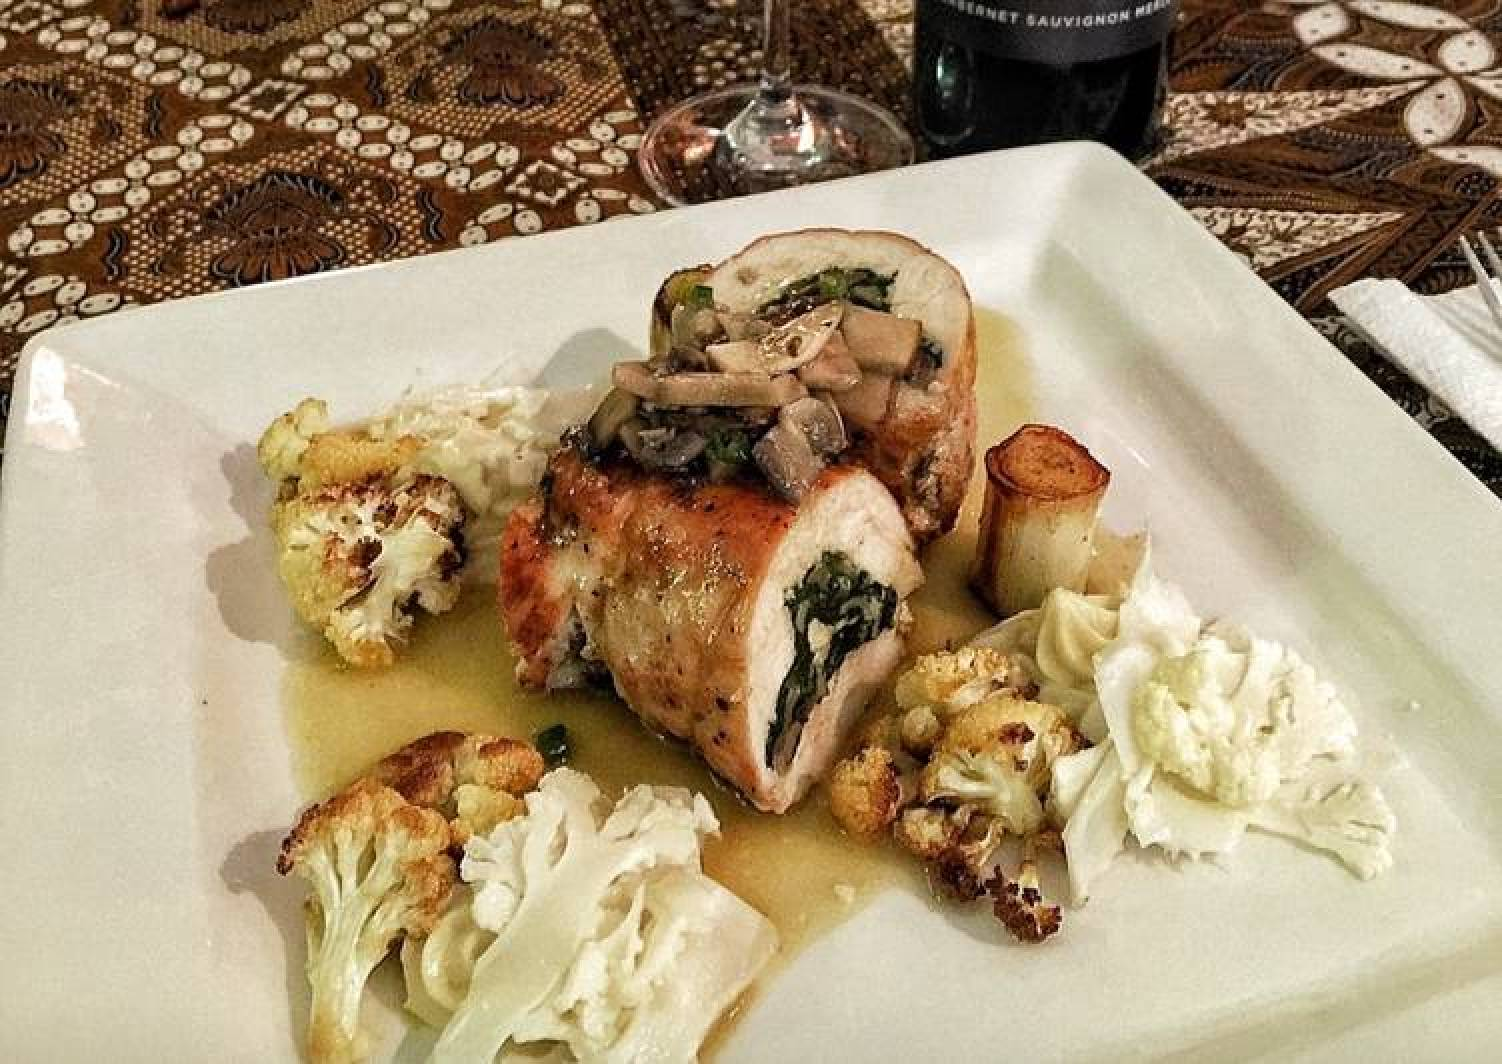 Chicken Roulade Stuffed with Wild Mushroom and Spinach